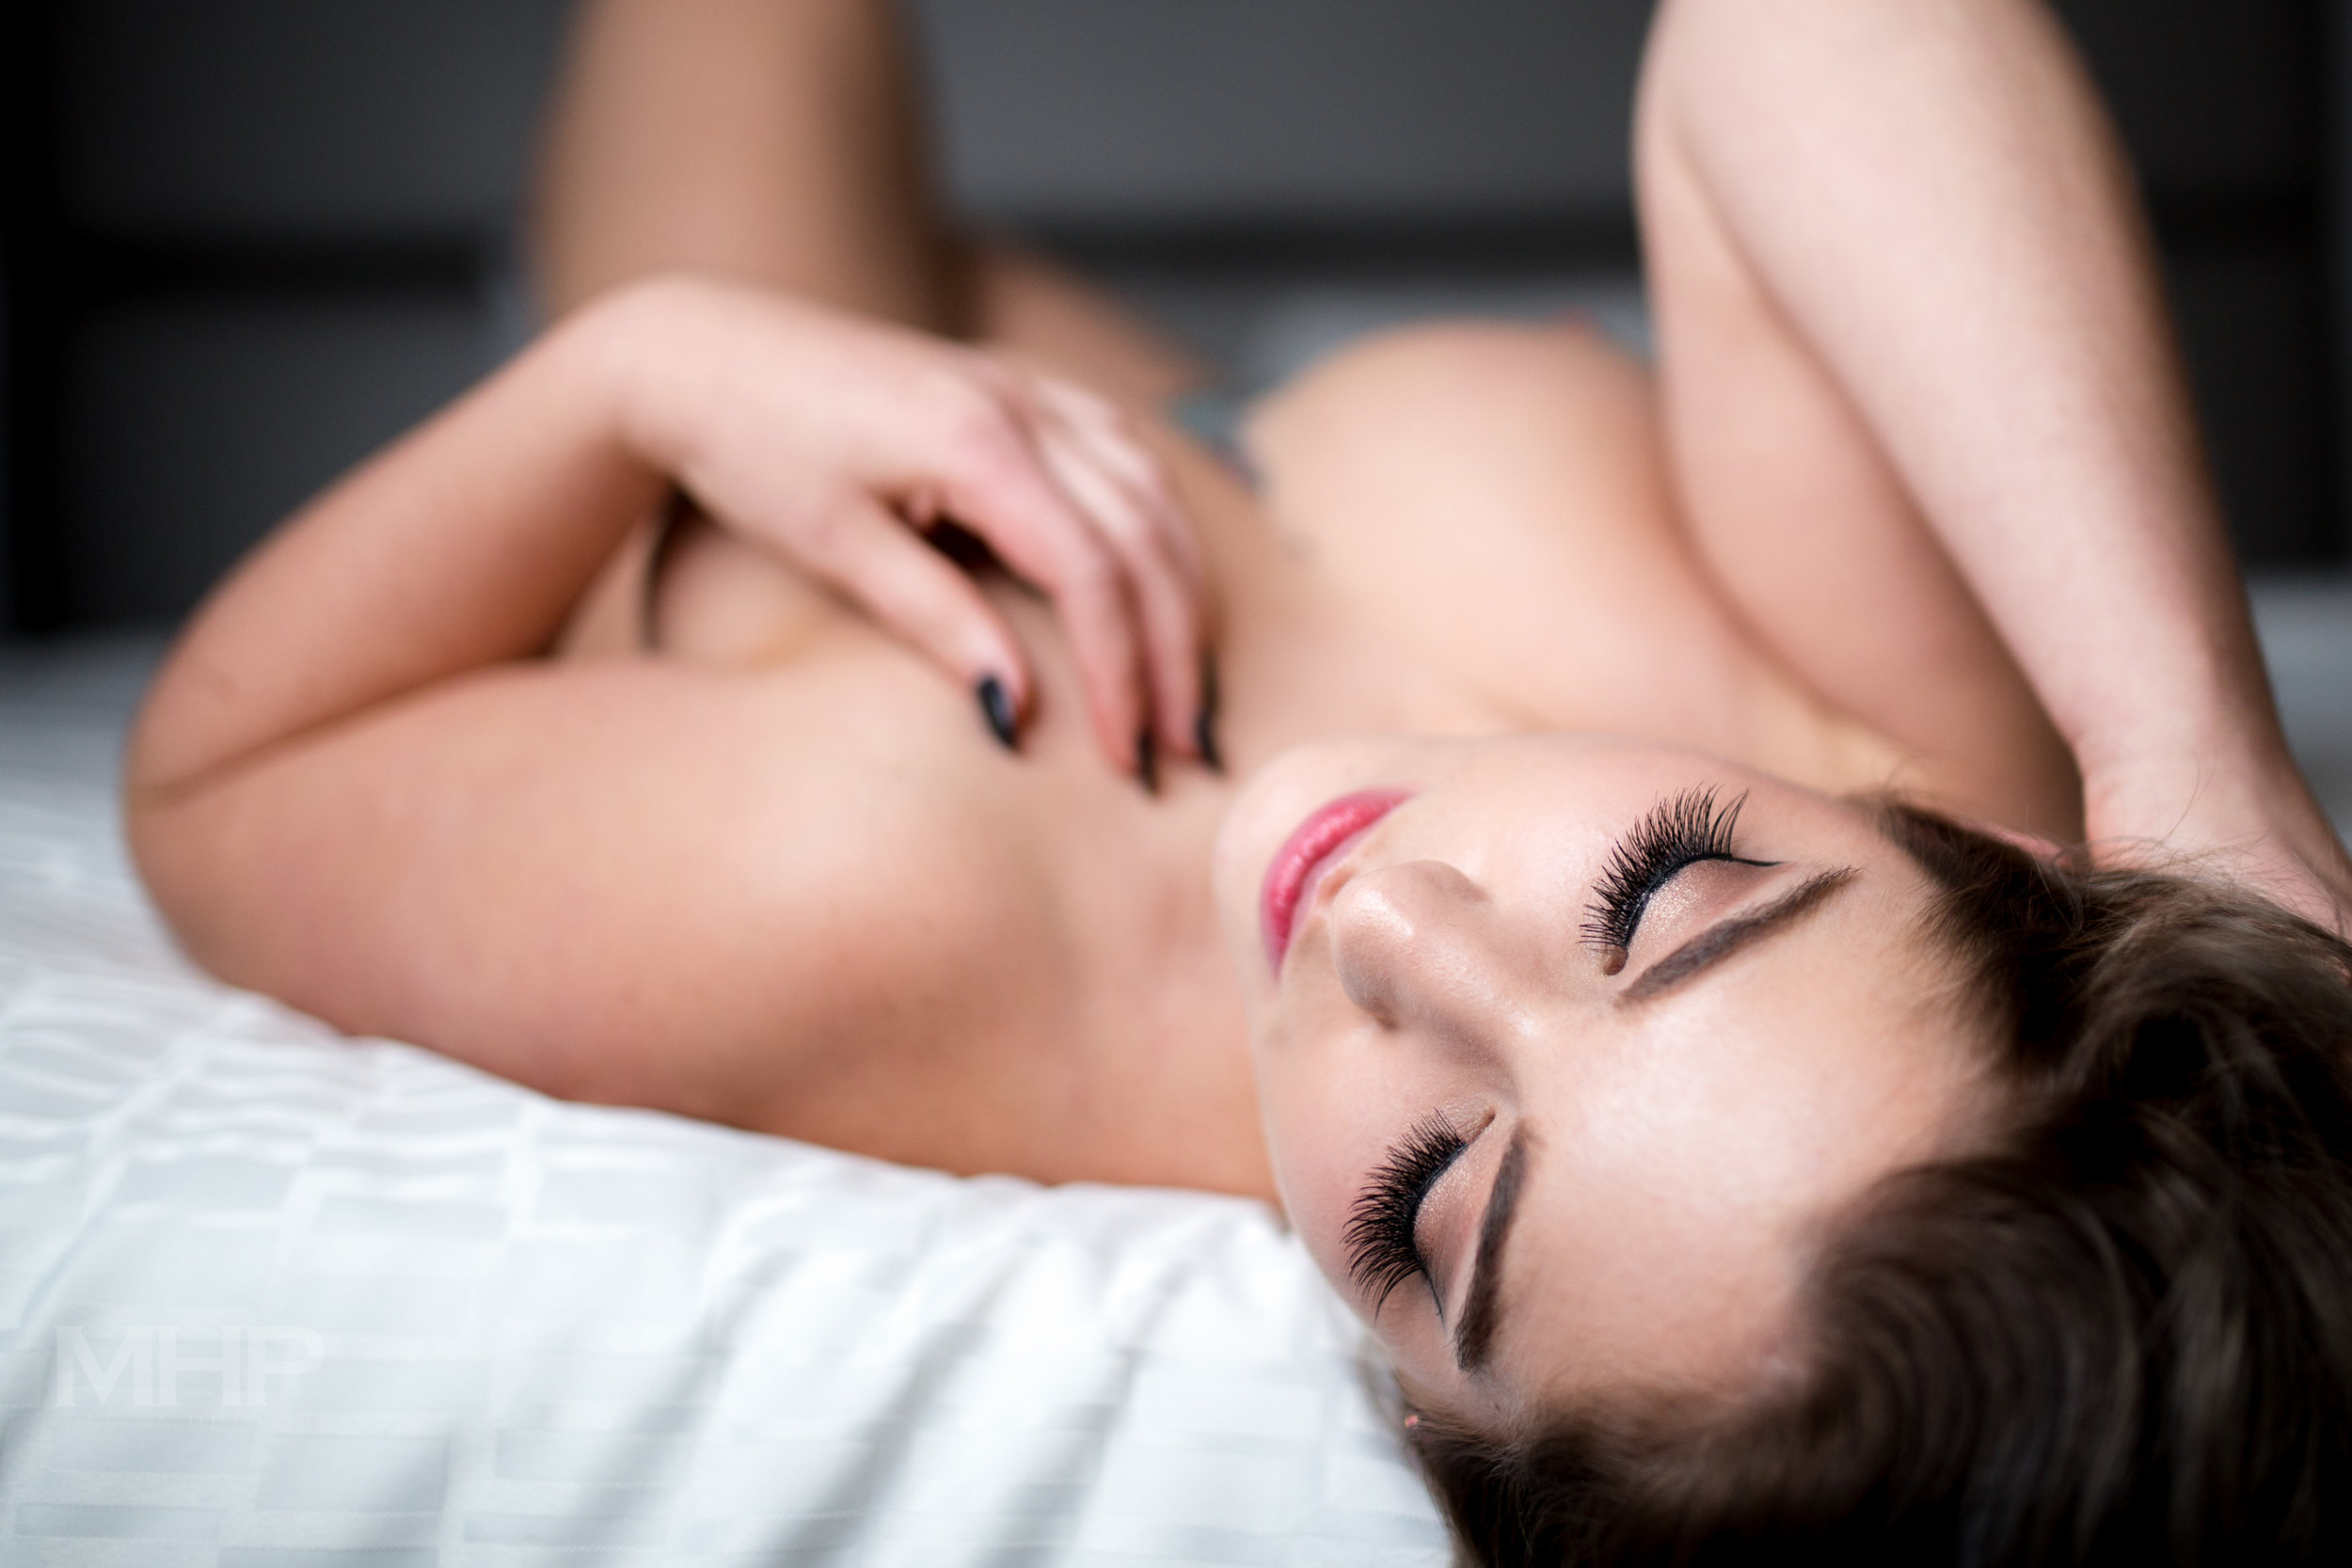 Classy and undeniably sexy boudoir photography